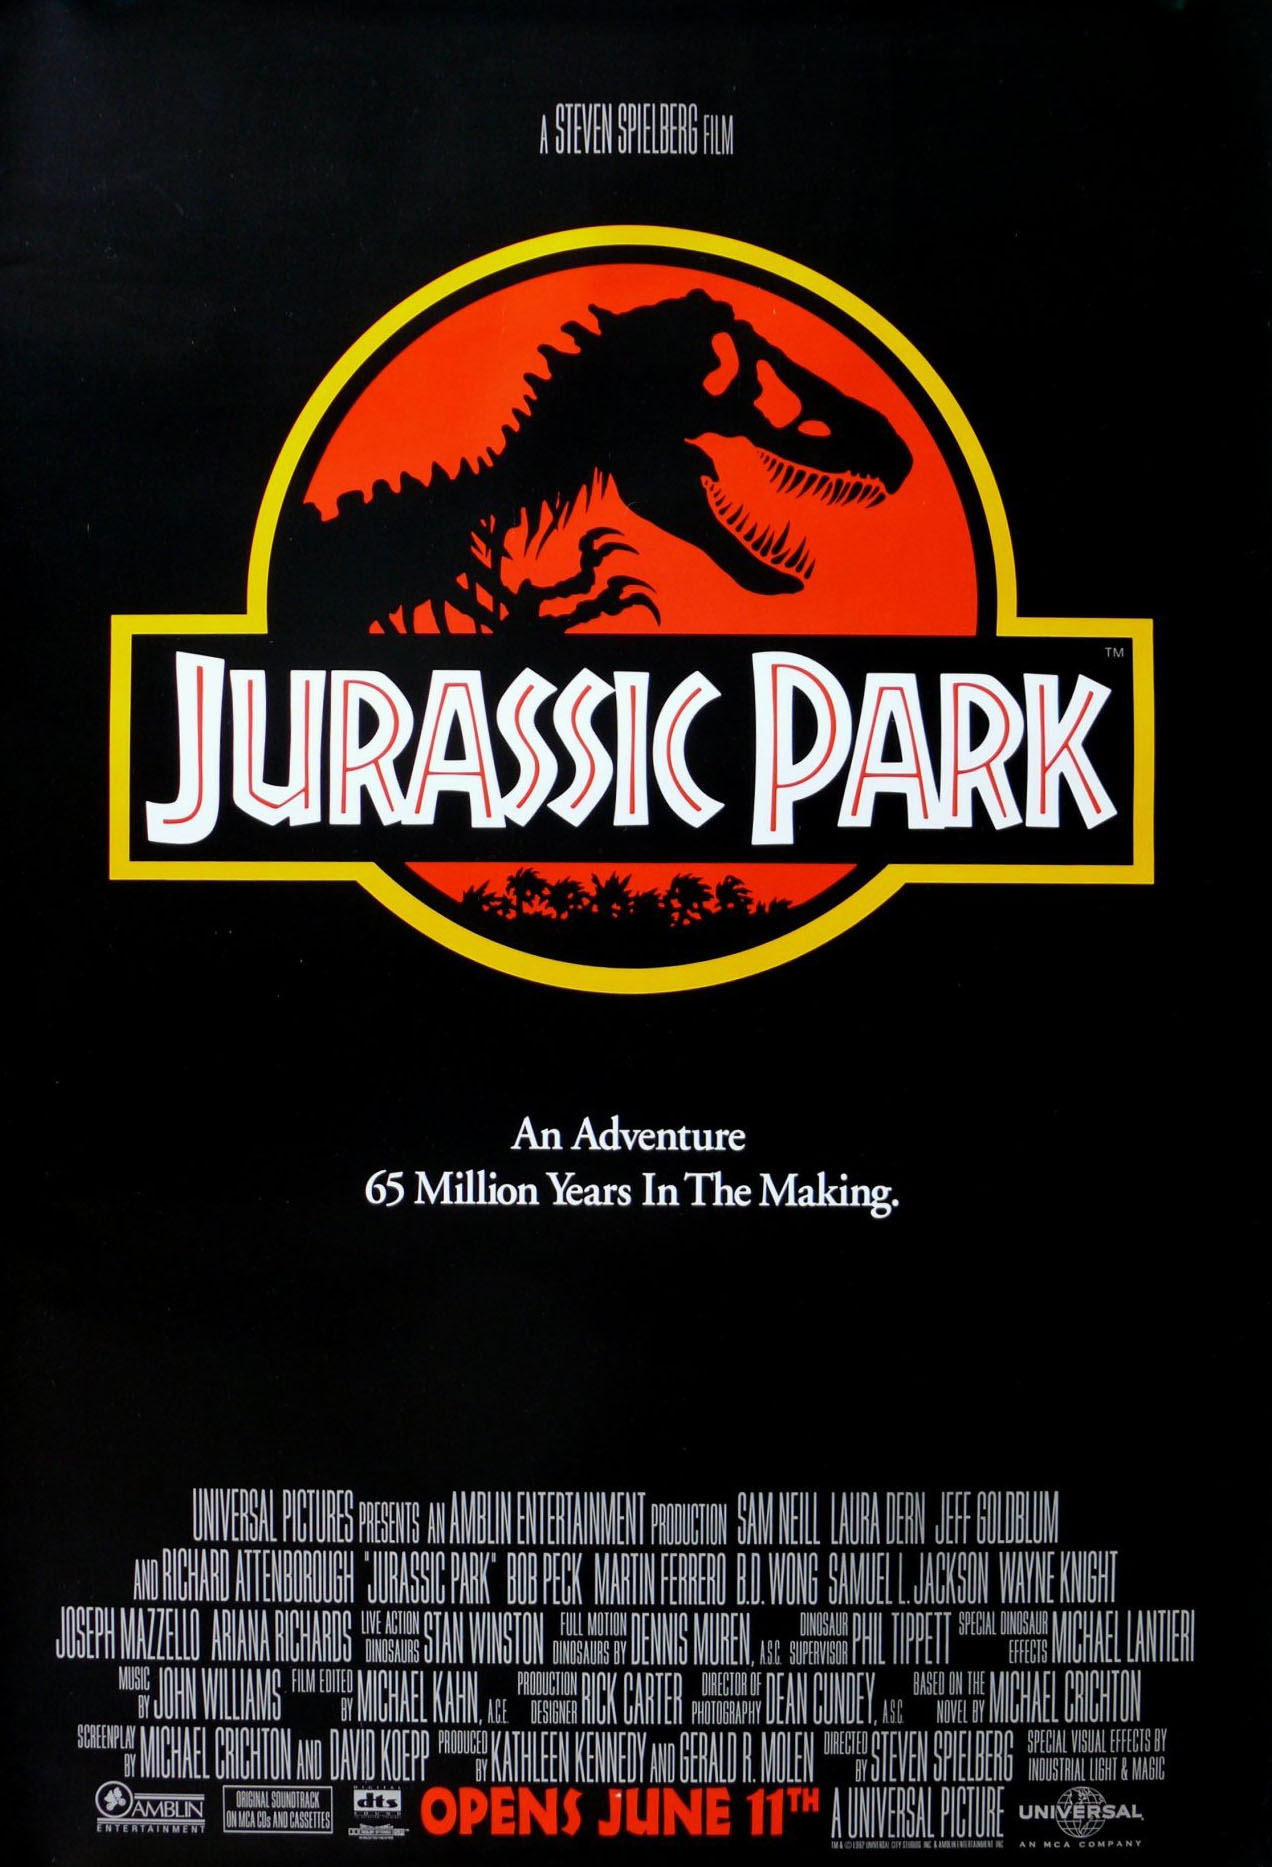 jurassic park poster When Did You First See Jurassic Park?